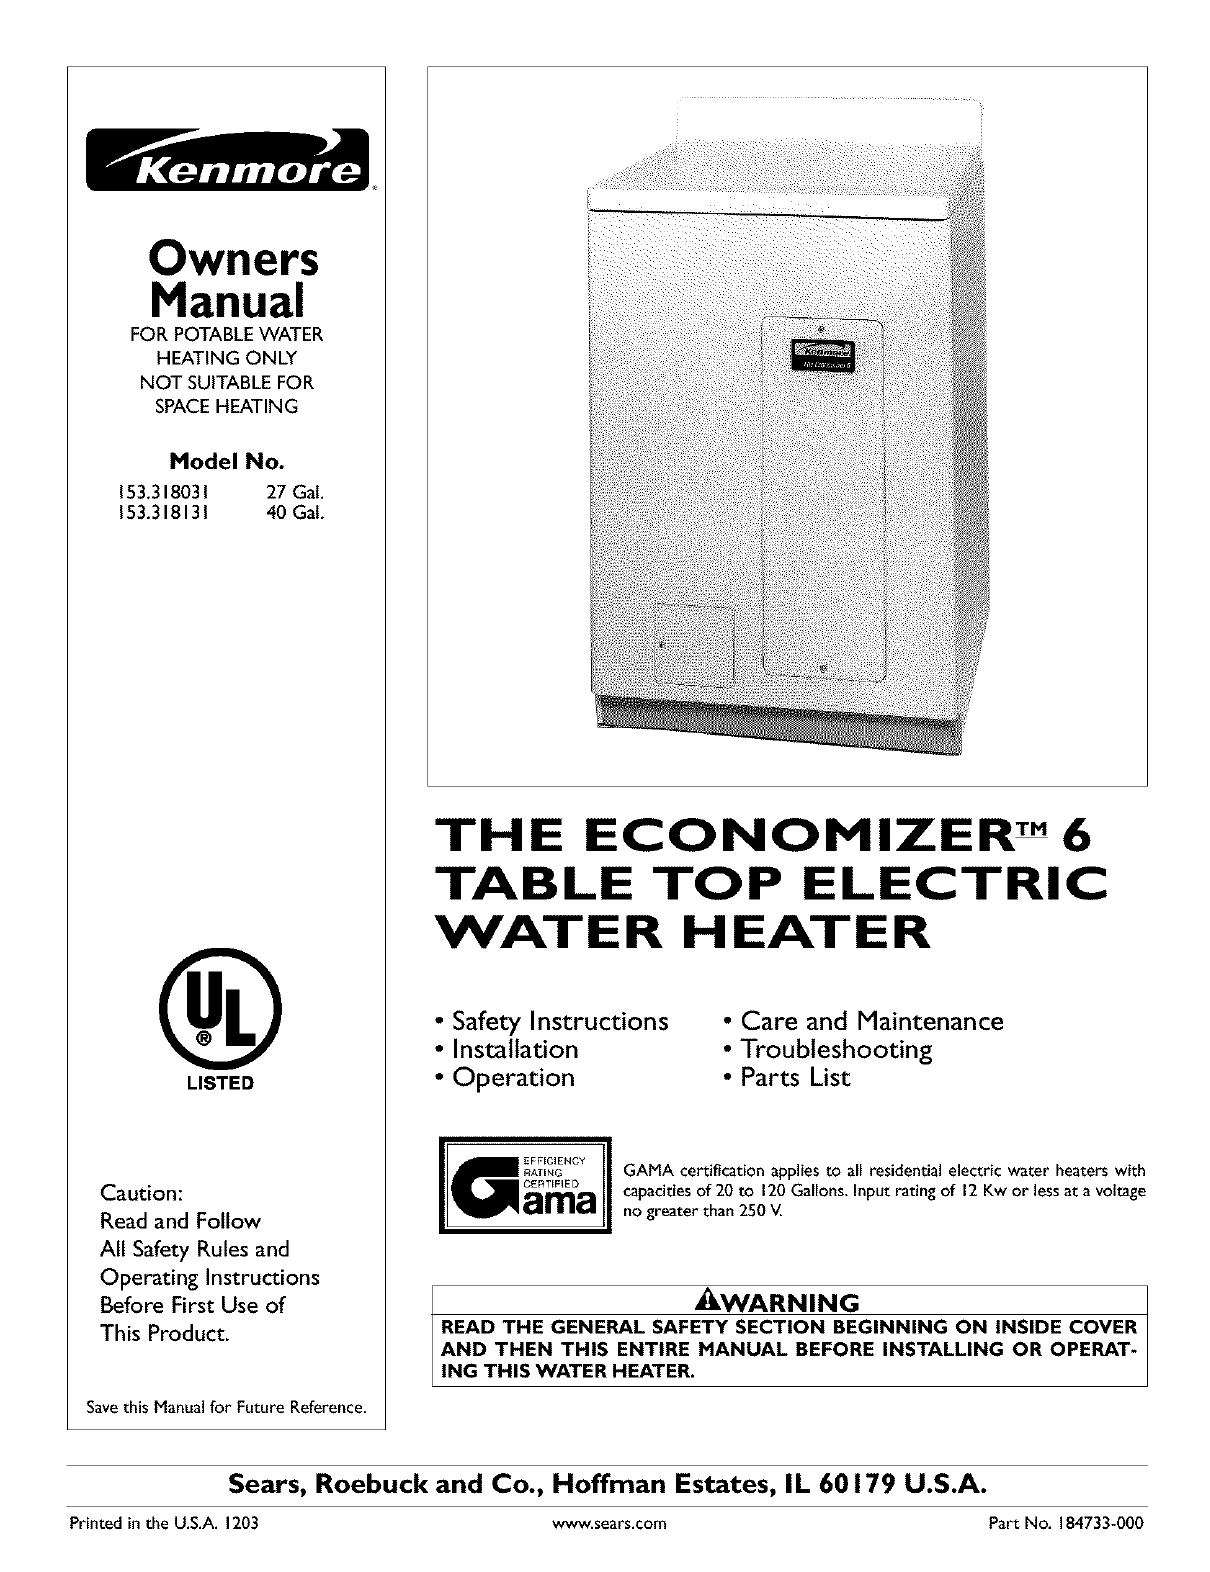 Kenmore water heater 153318131 user guide manualsonline owners manual ccuart Image collections